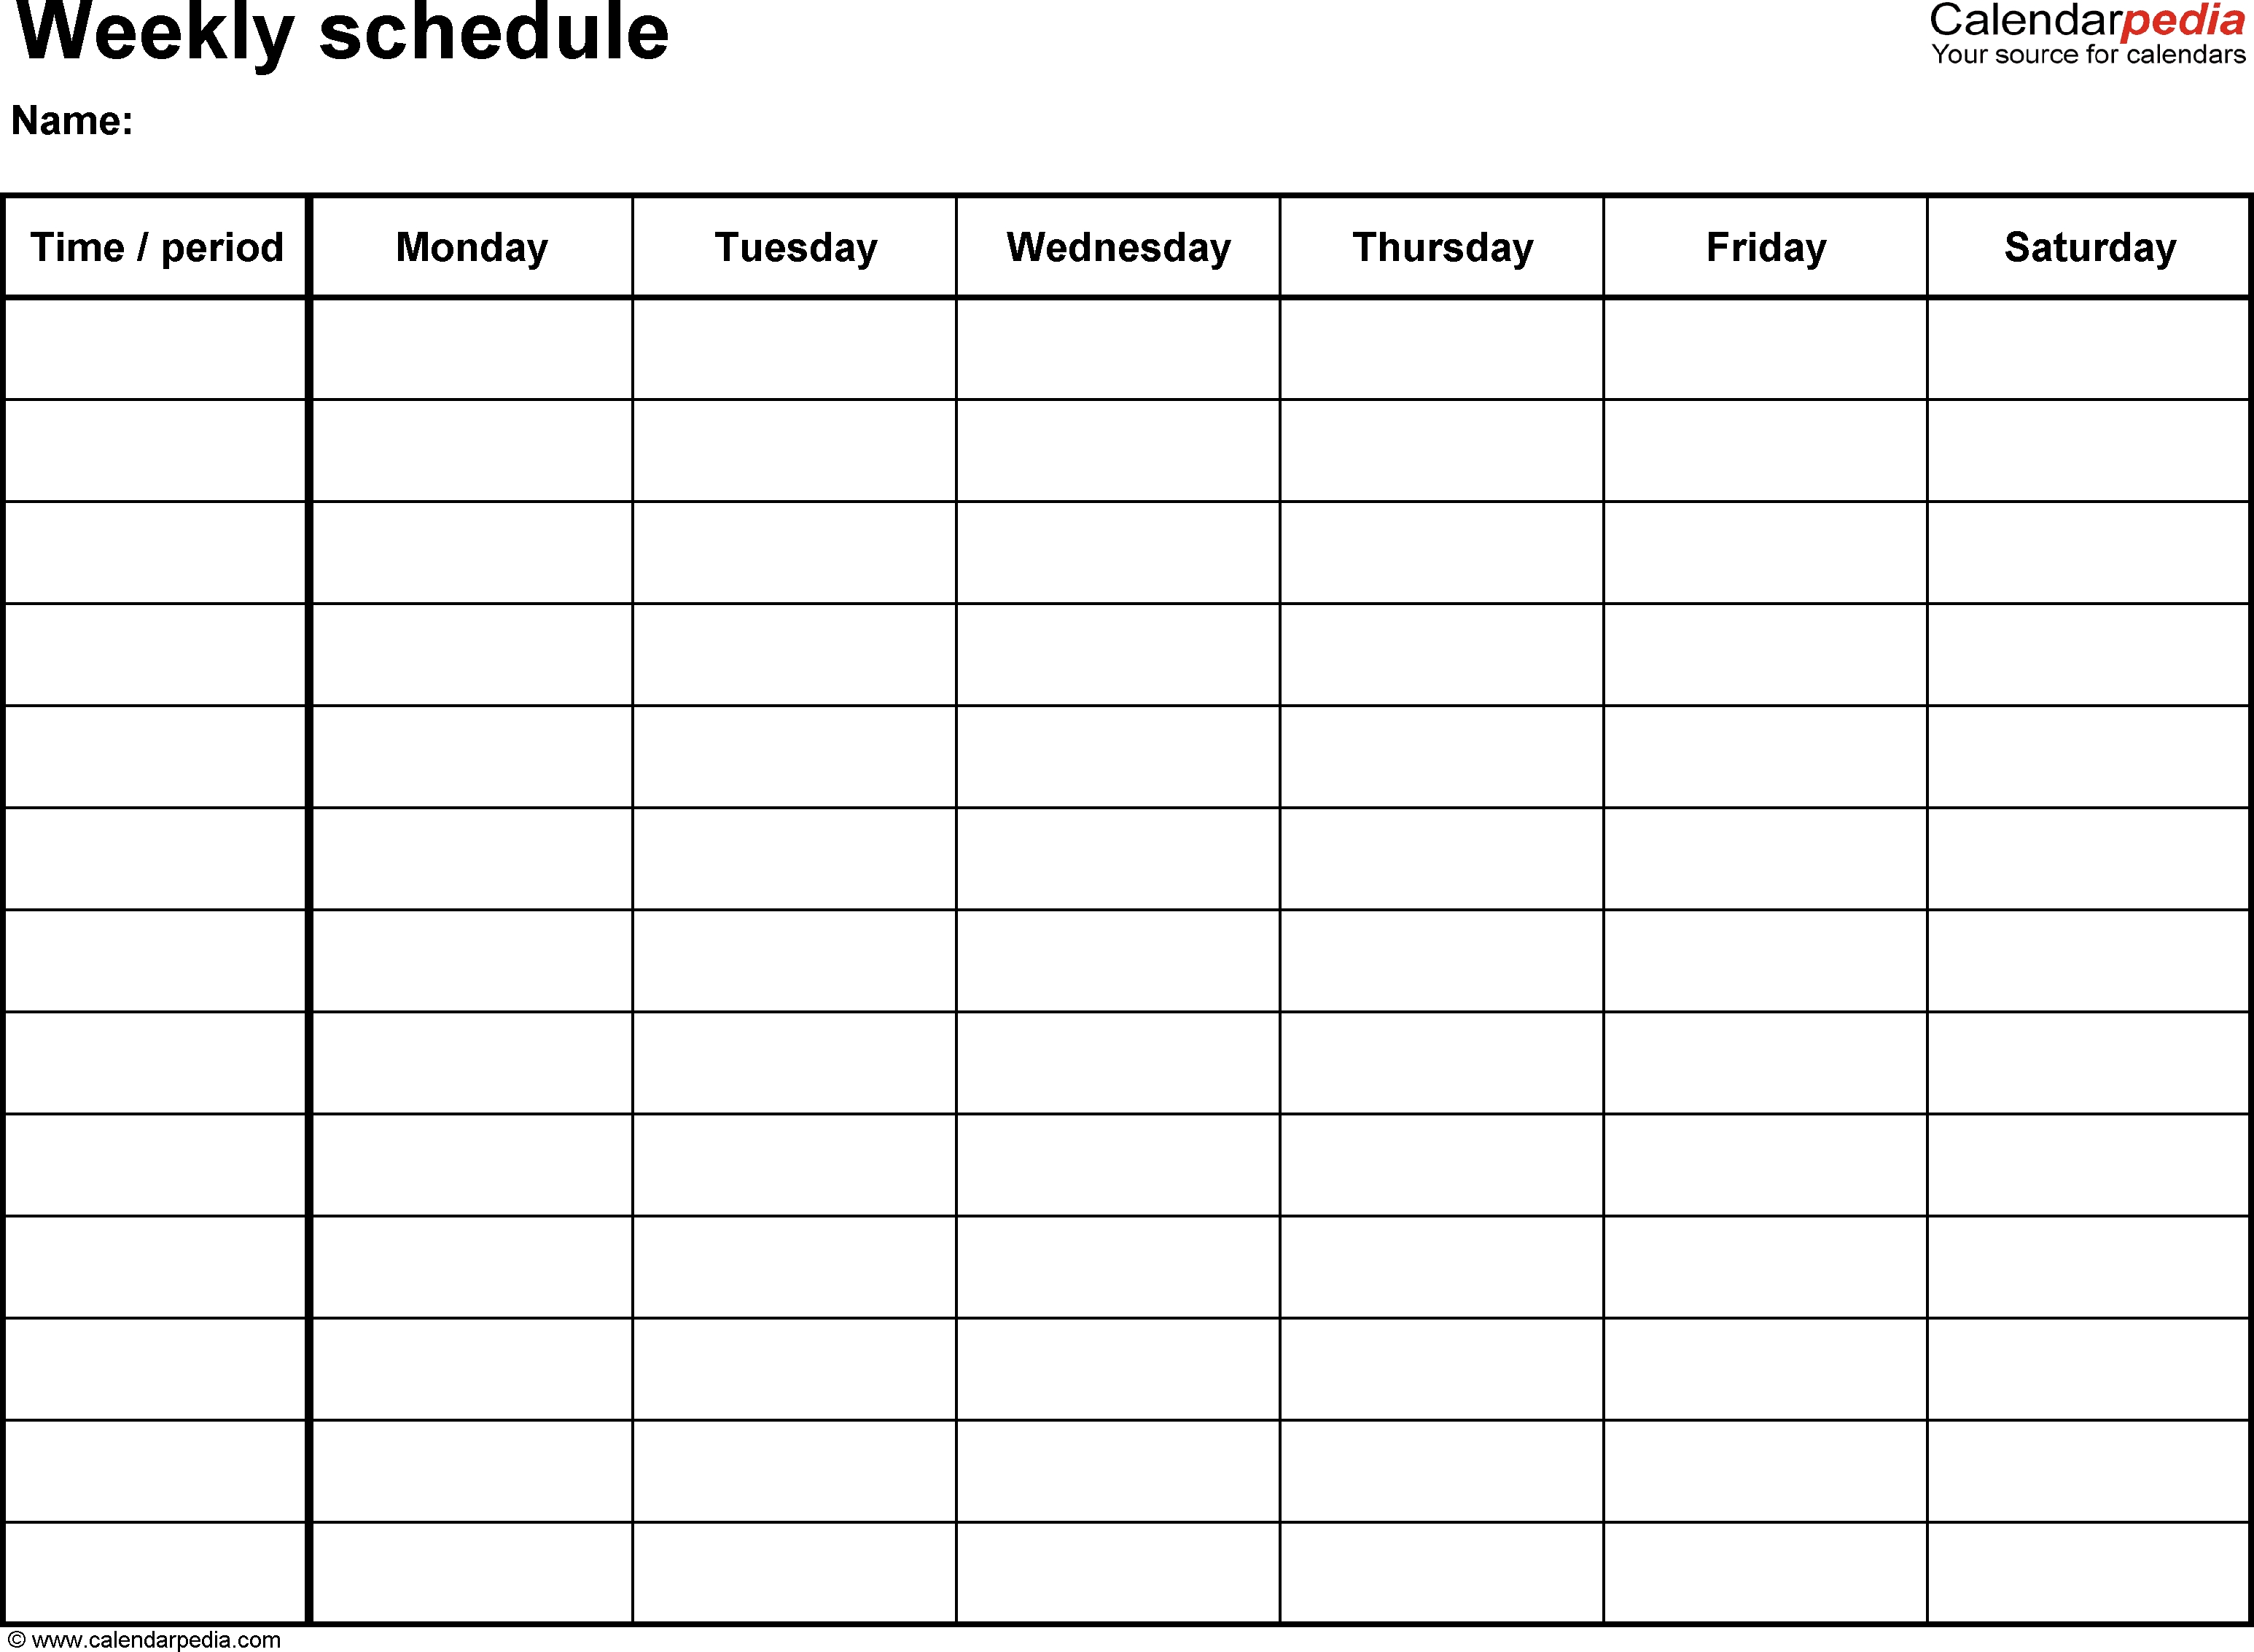 Free Weekly Schedule Templates For Excel - 18 Templates throughout Weekly Schedule Template With Times